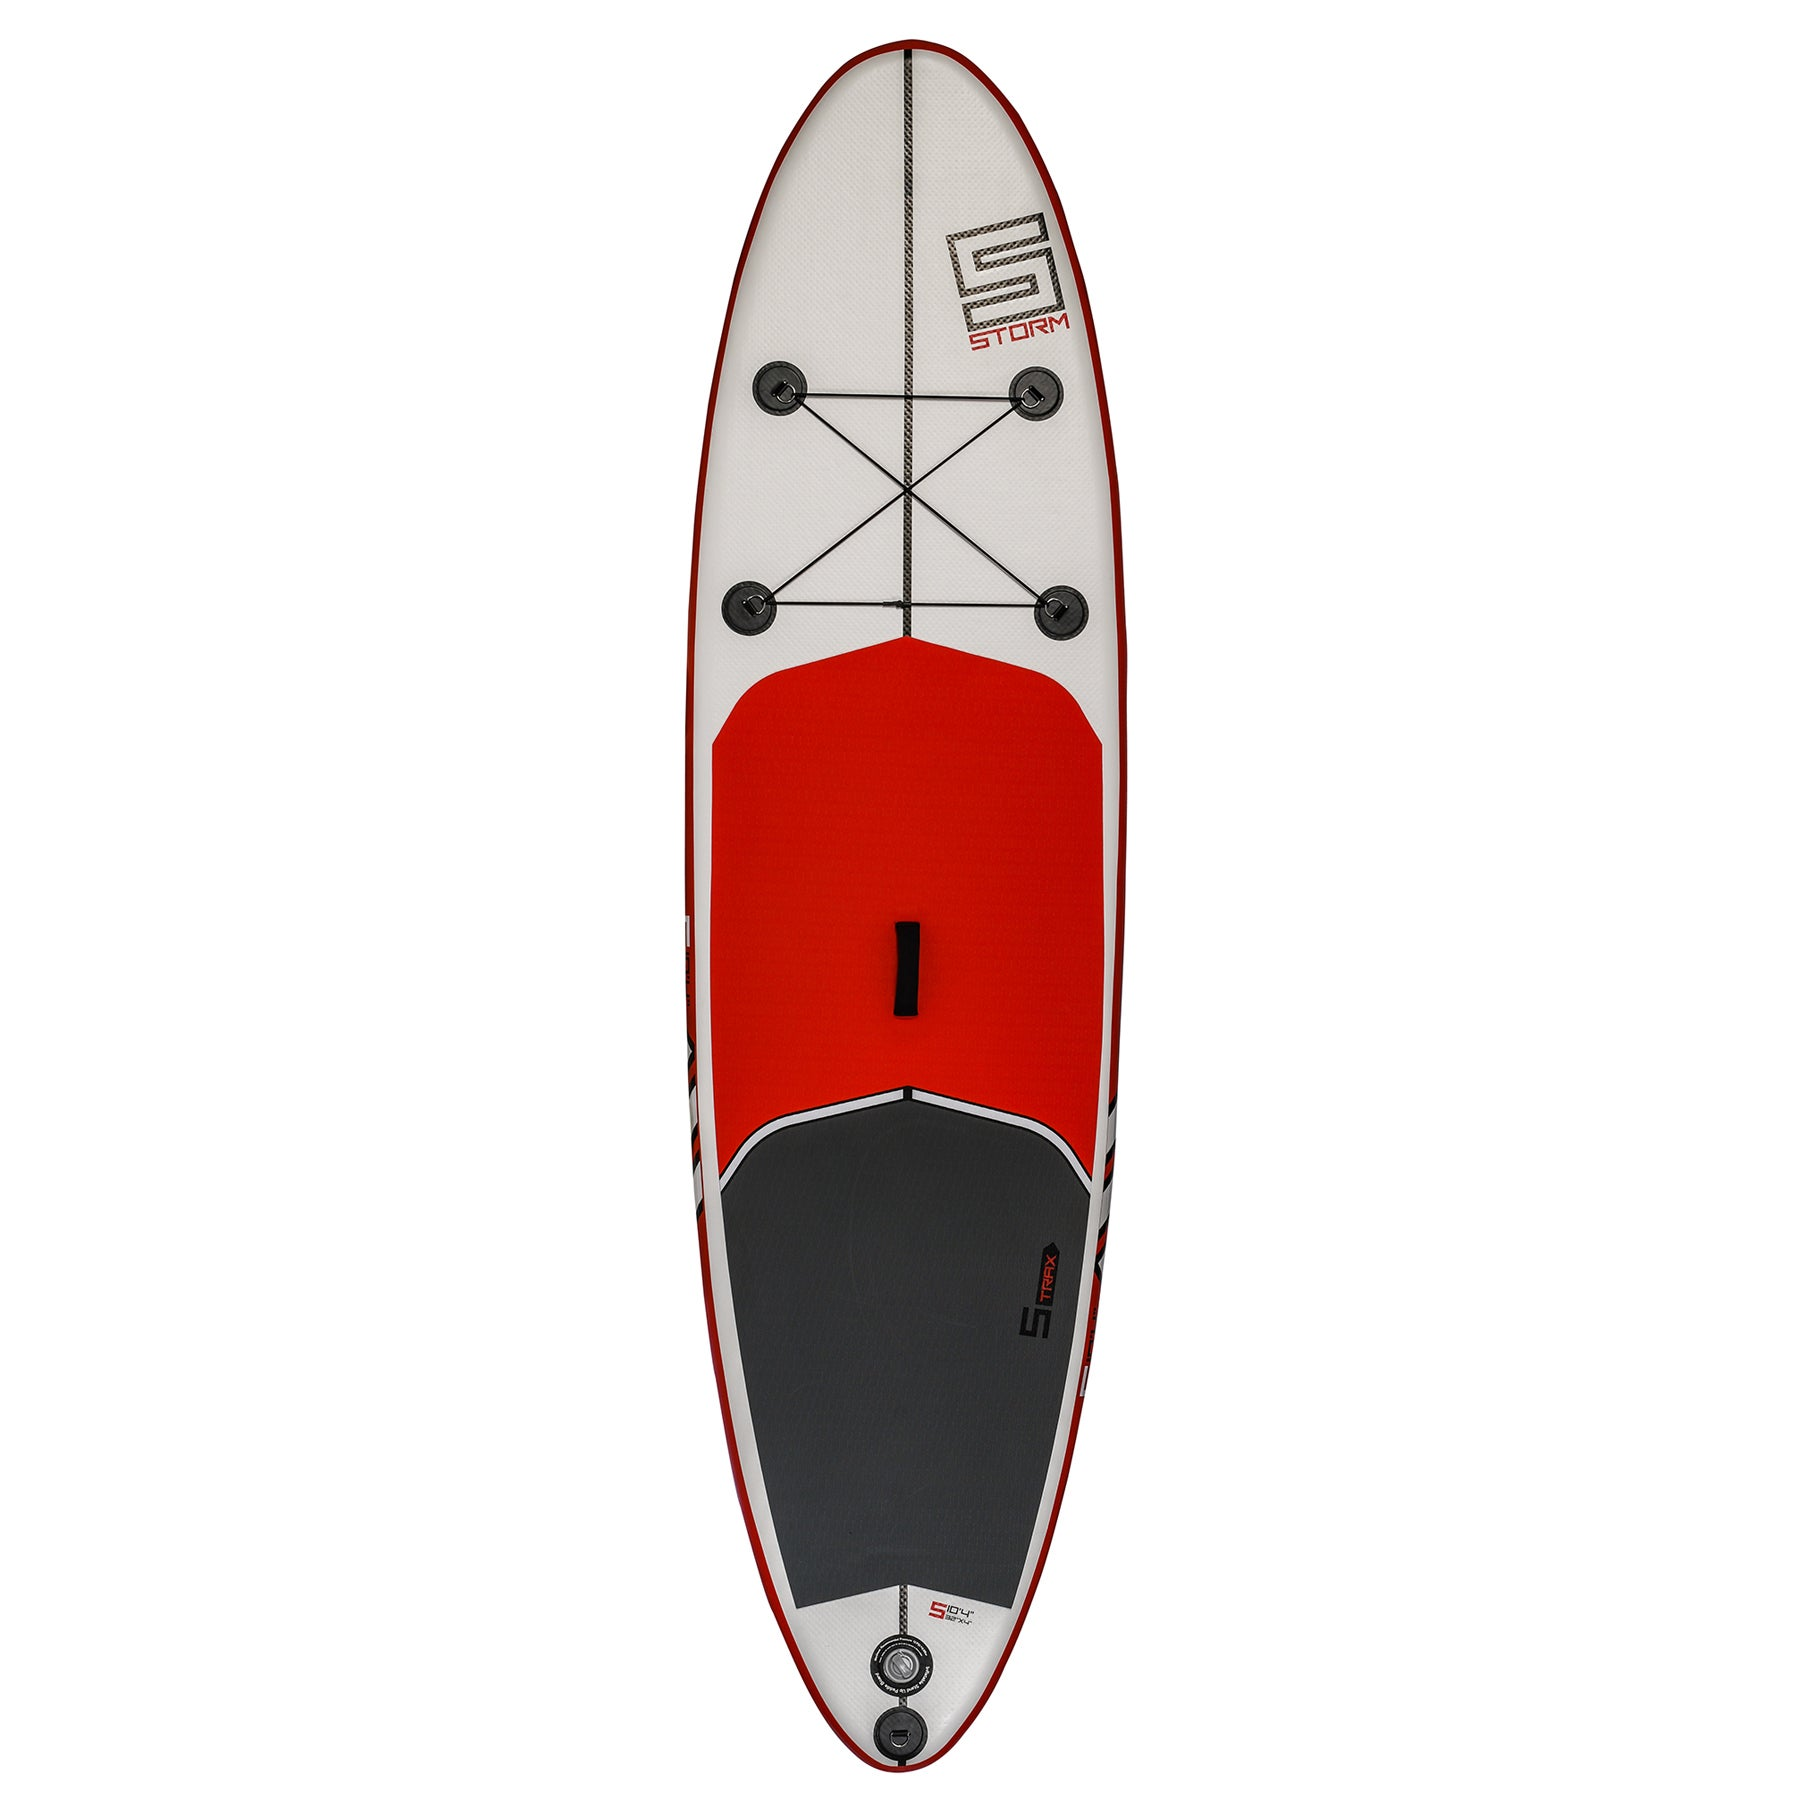 Storm Inflatable SUP Board - White